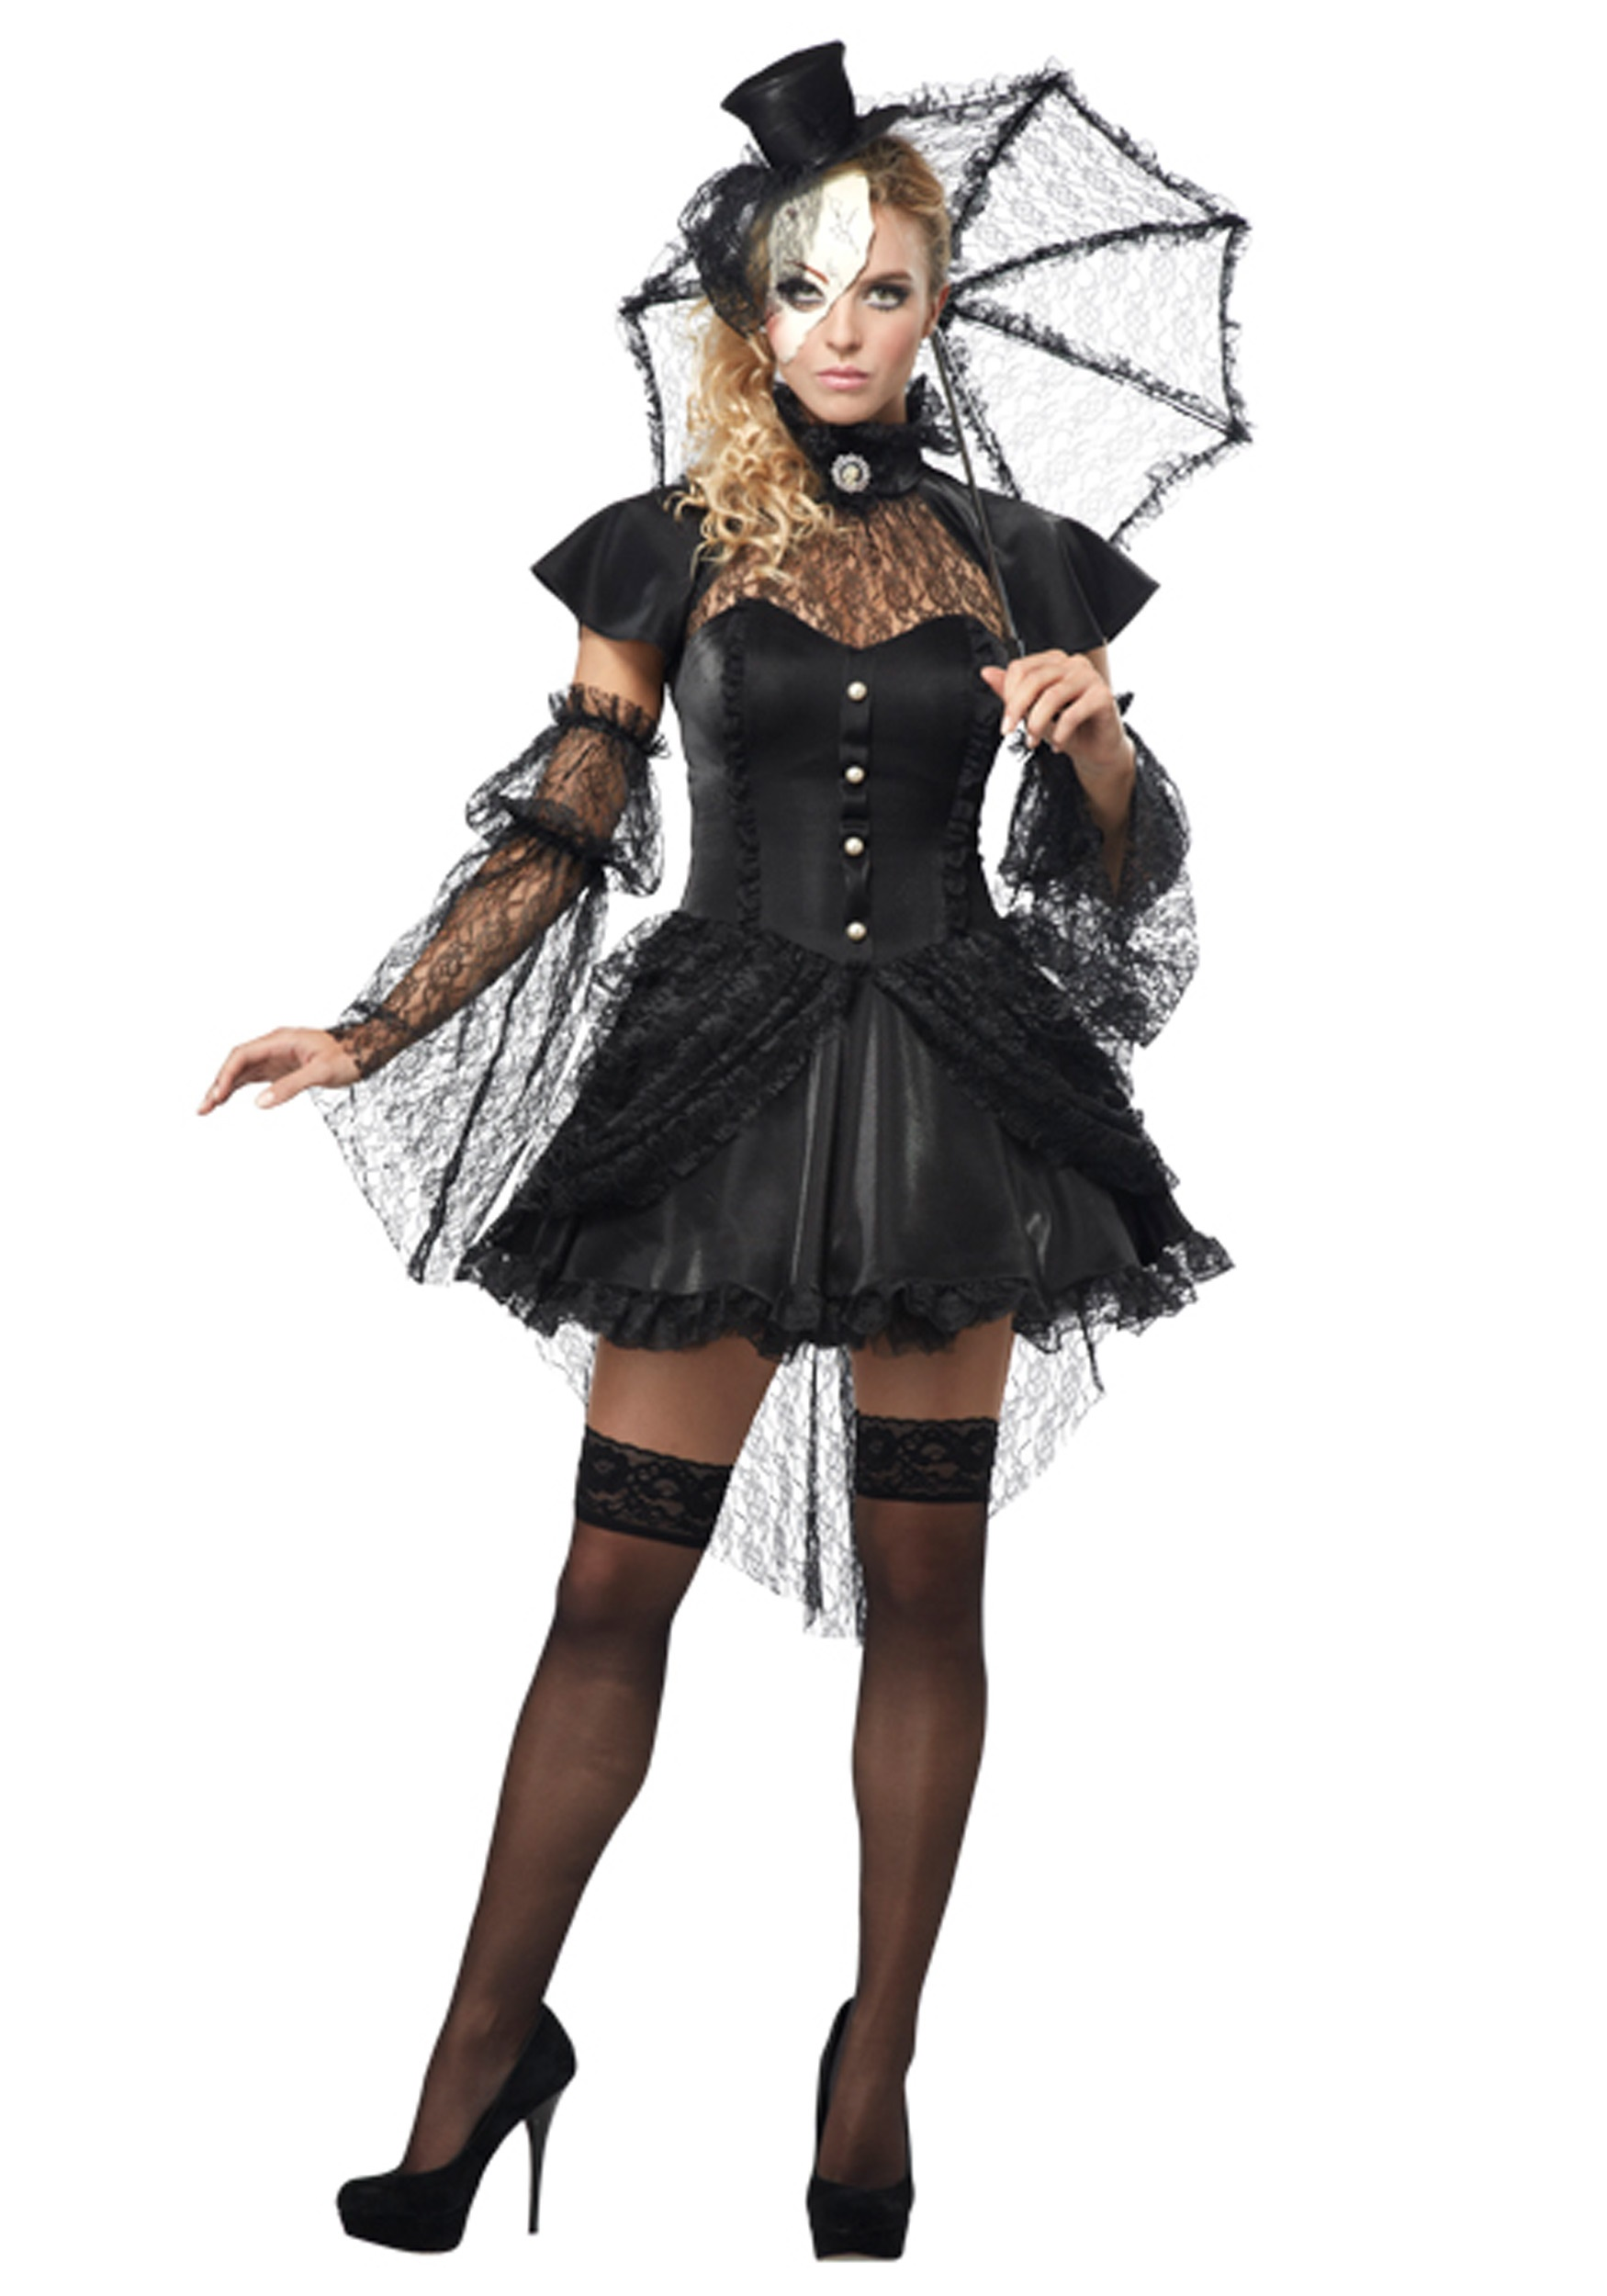 Gothic Costumes - Halloween Costume Ideas 2016